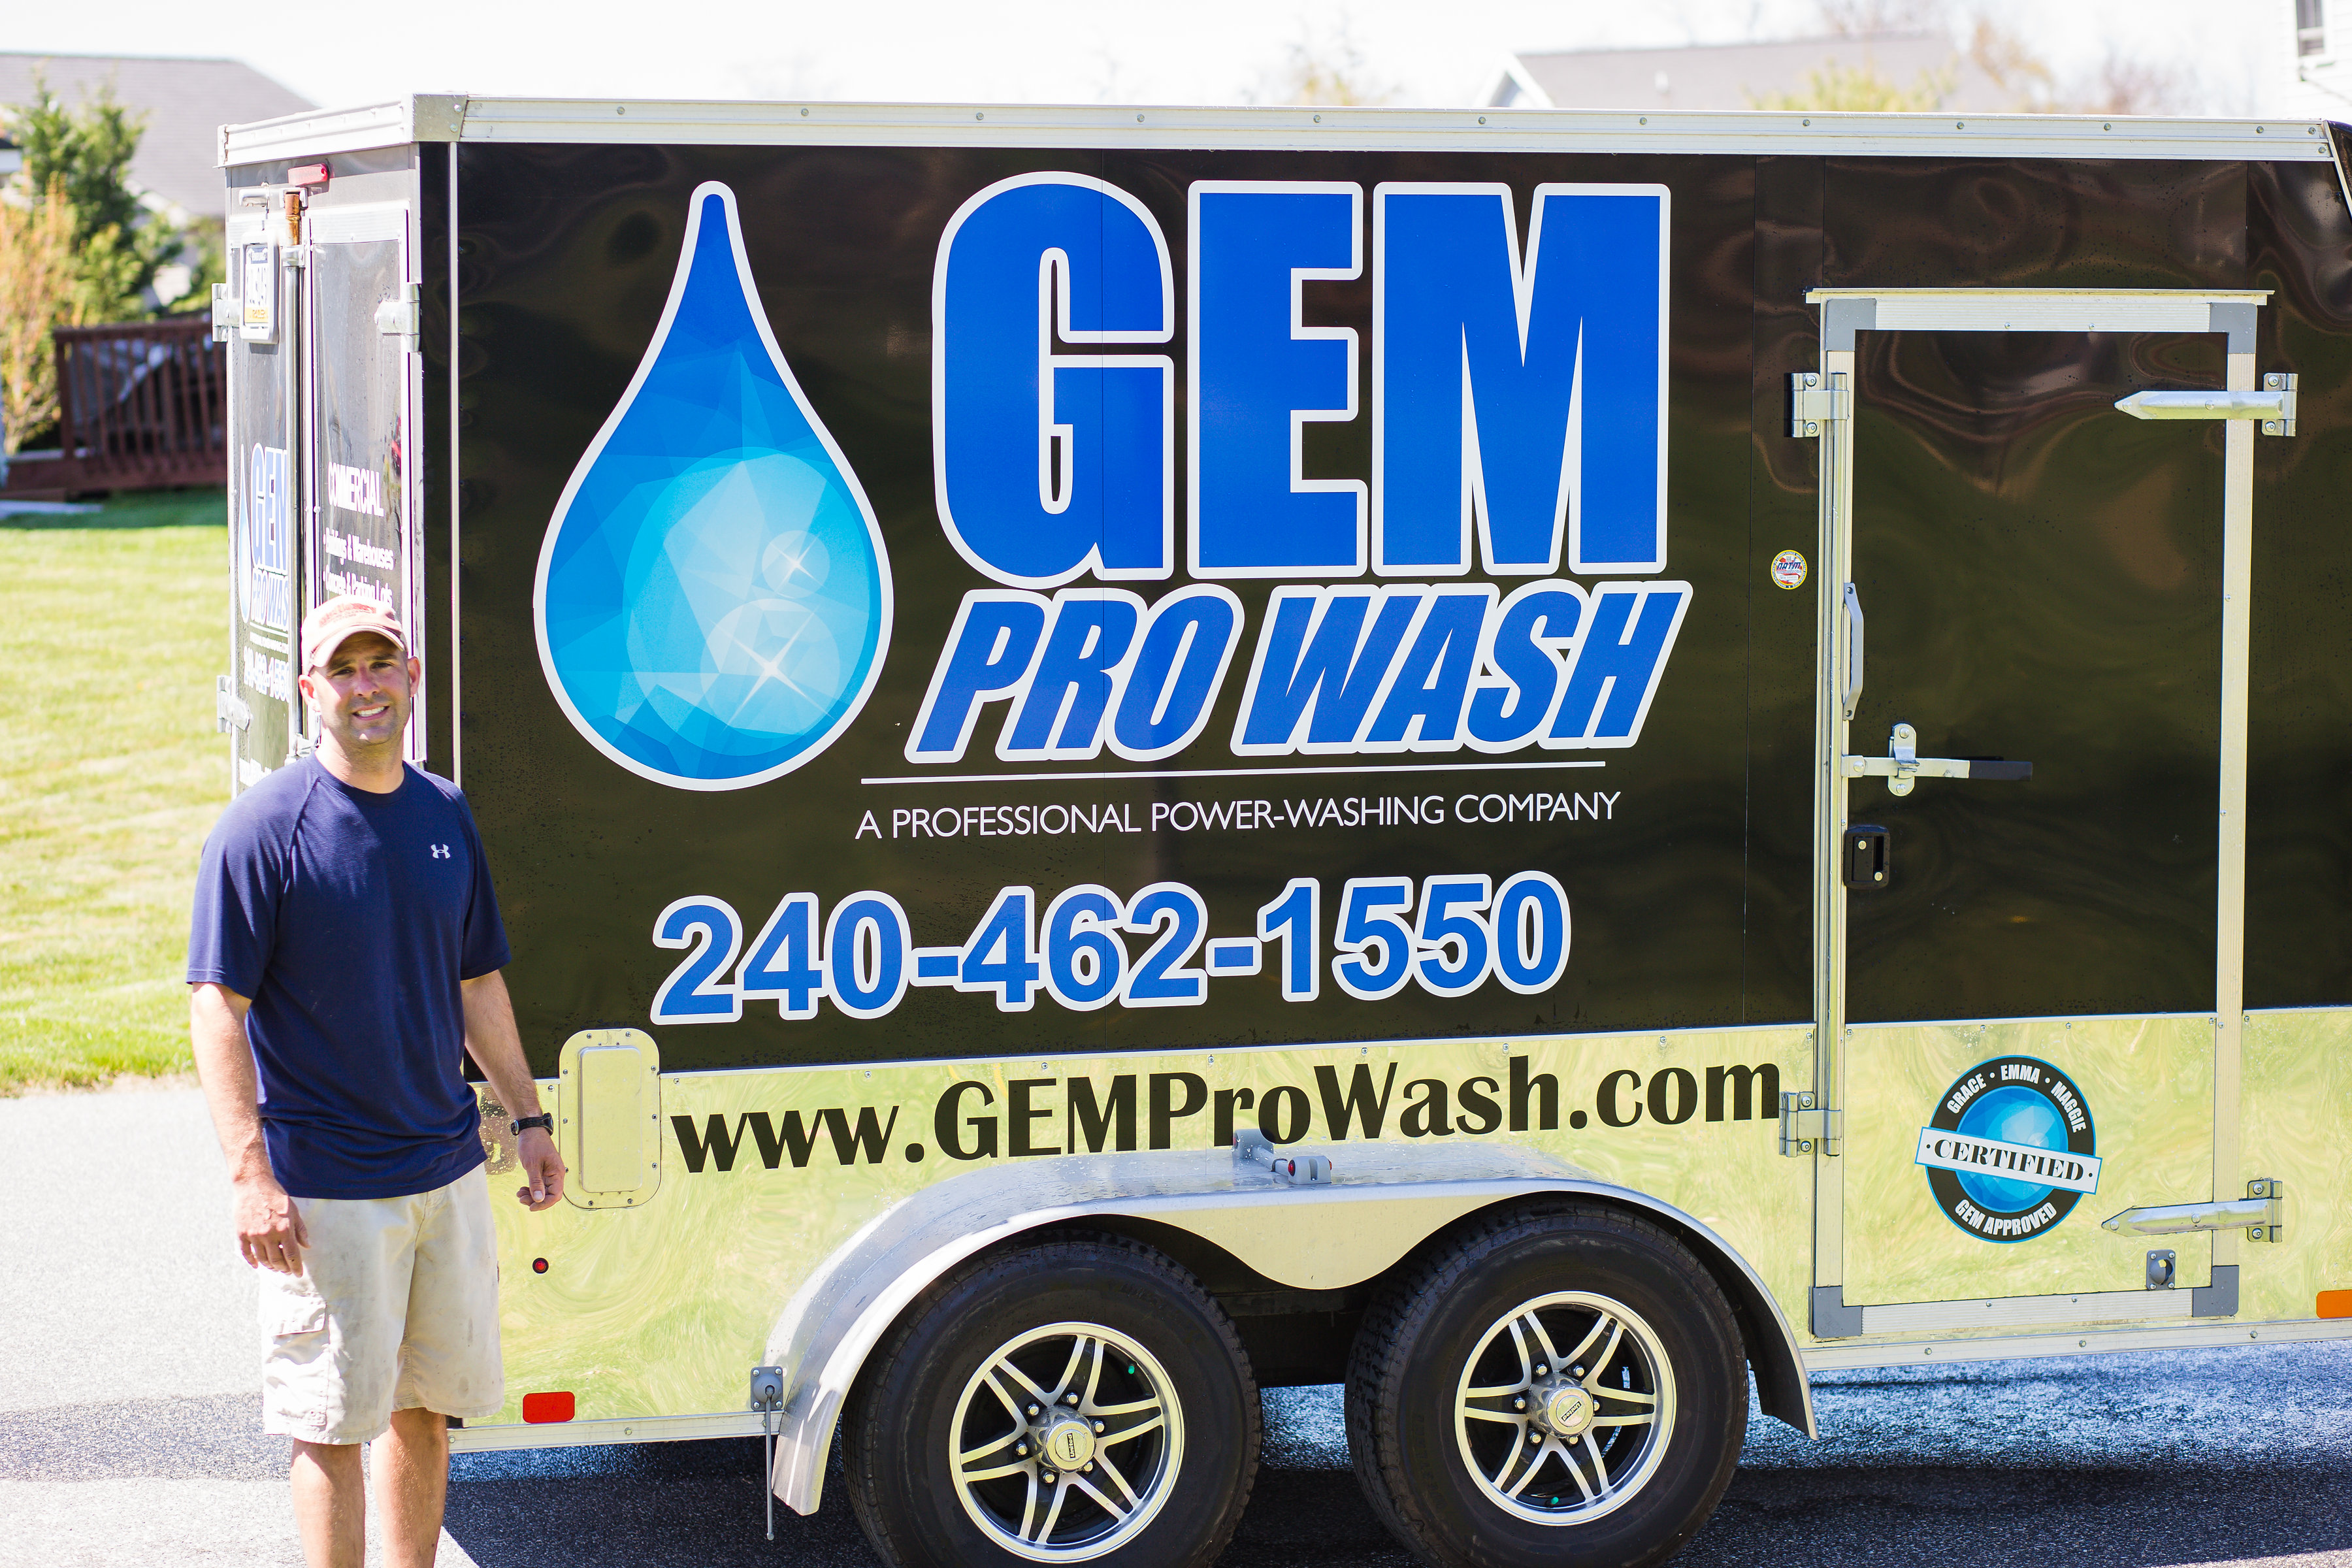 Gem Pro Wash | Pressure Washing Contractor in Greencastle PA